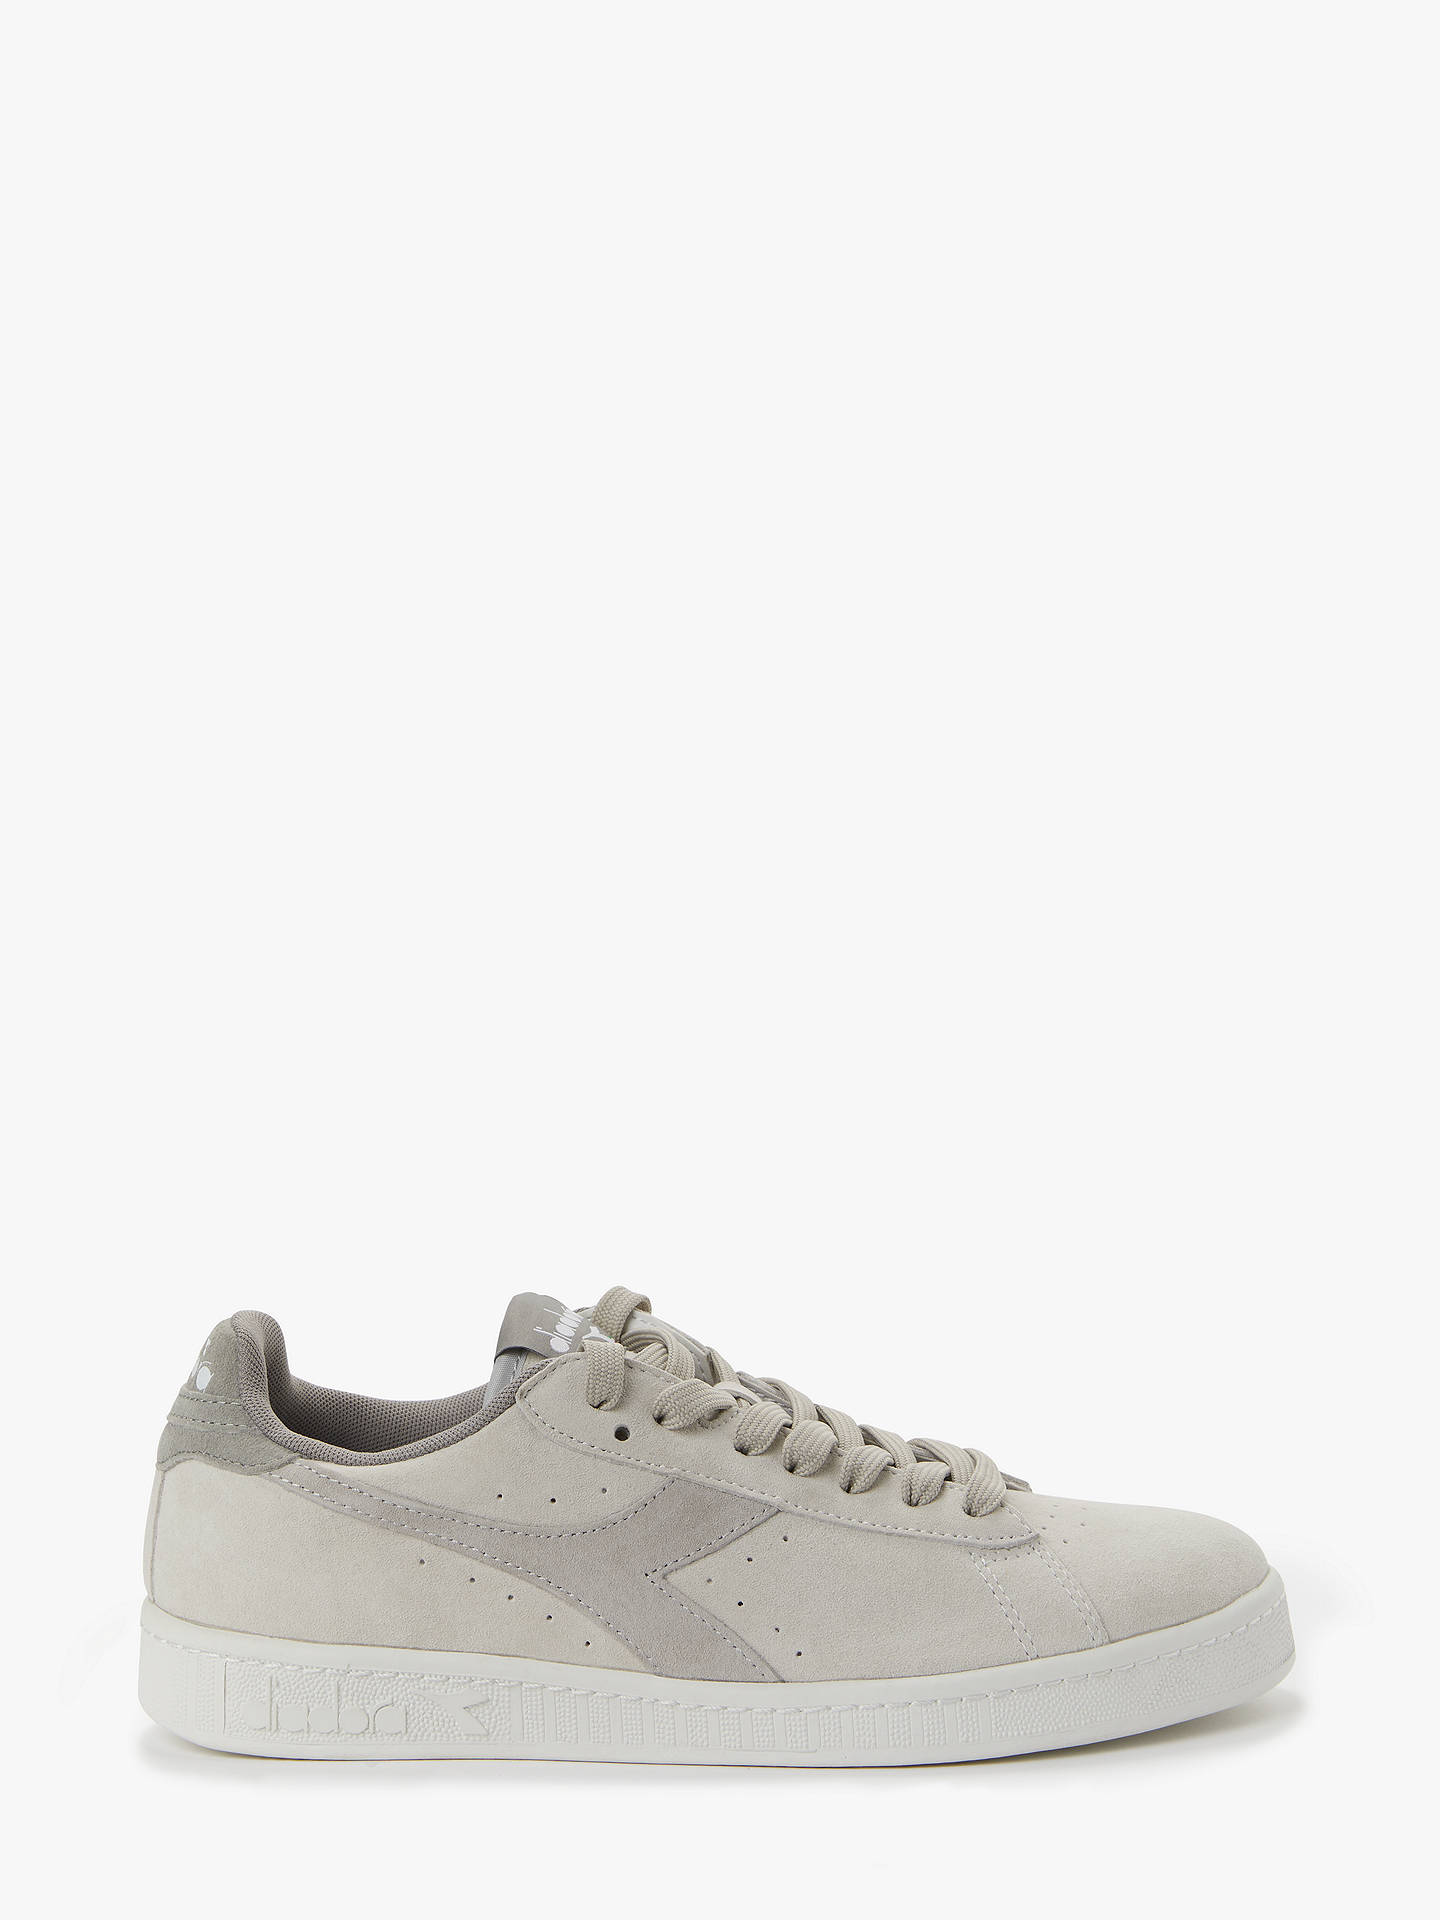 09173ef621 Diadora Game Low Grain Trainers, Wind Chime/Storm Grey at John Lewis ...